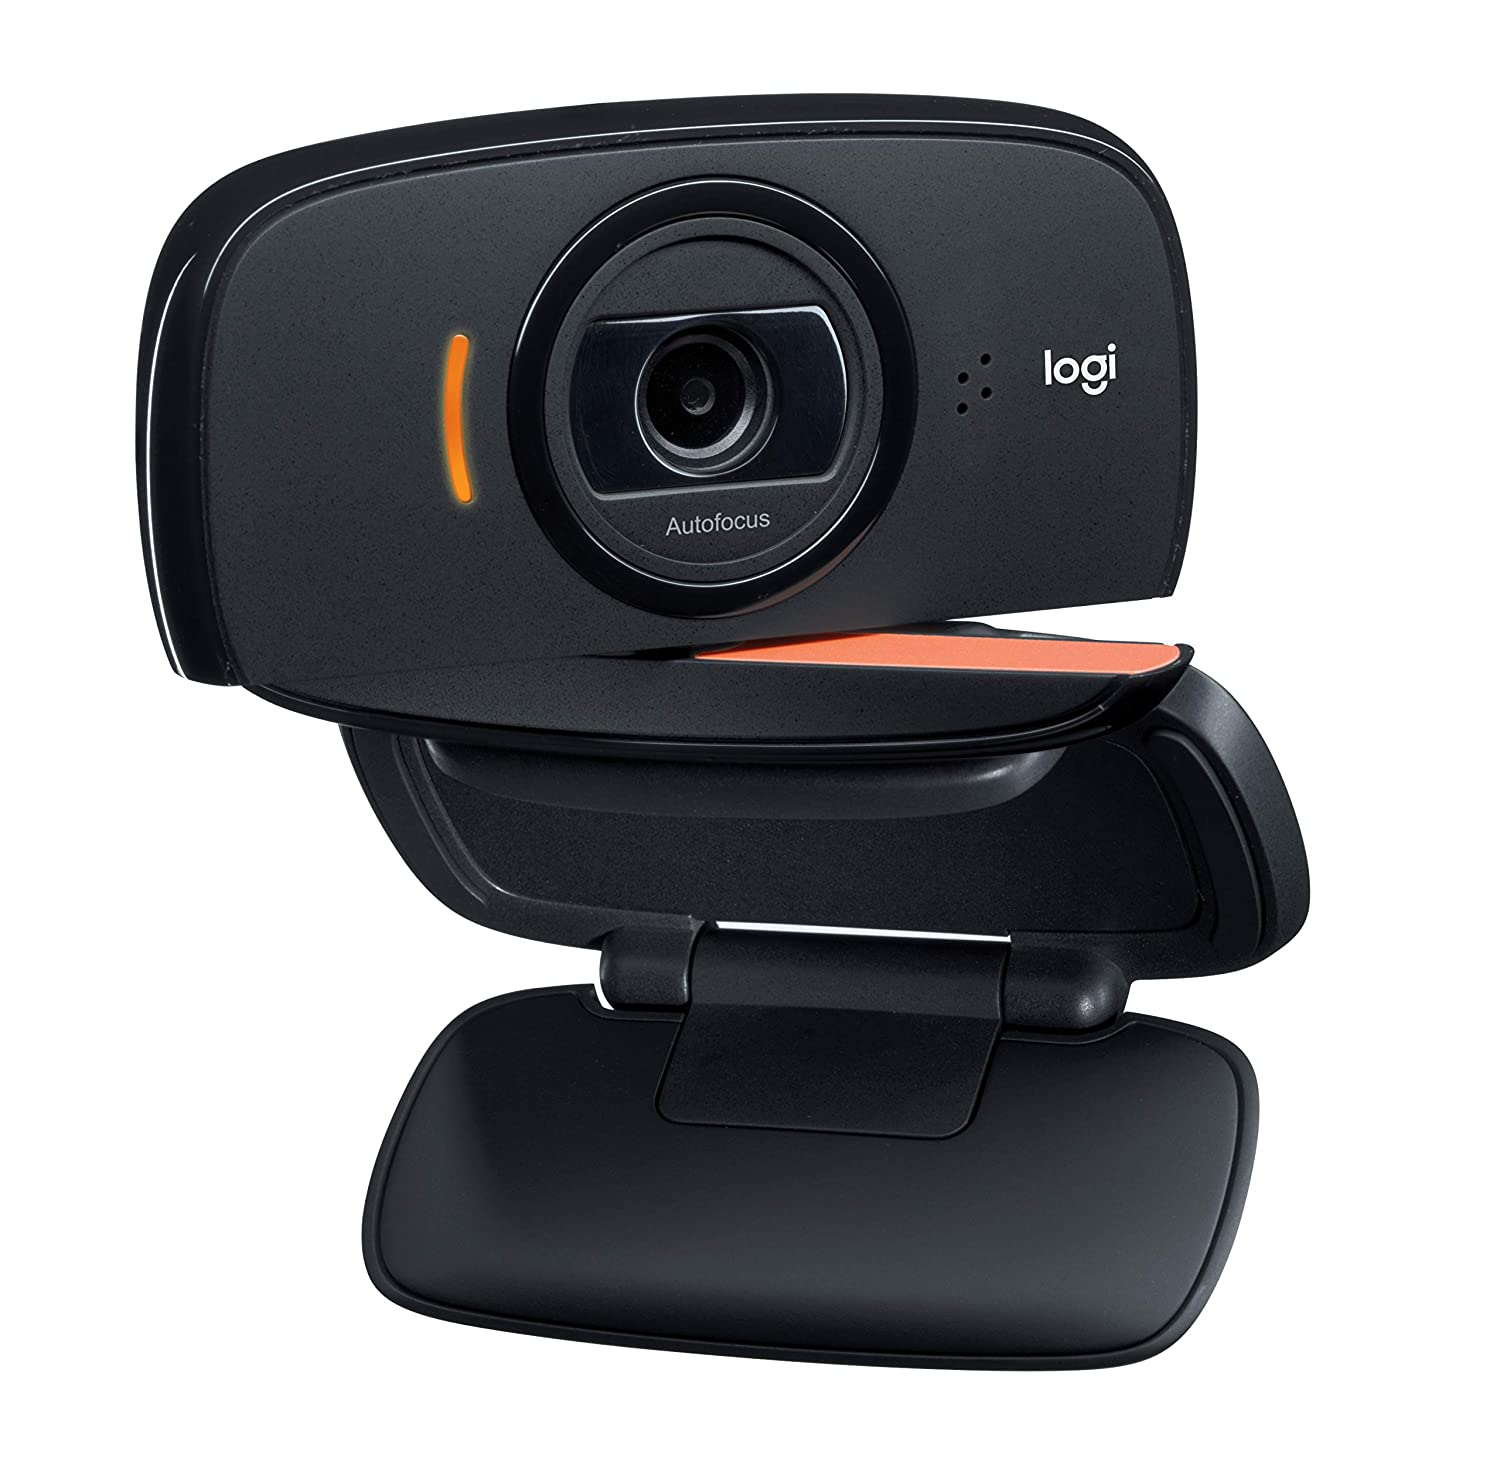 97ddc756f97 Amazon.com: Logitech HD Webcam C525, Portable HD 720p Video Calling with  Autofocus: Electronics